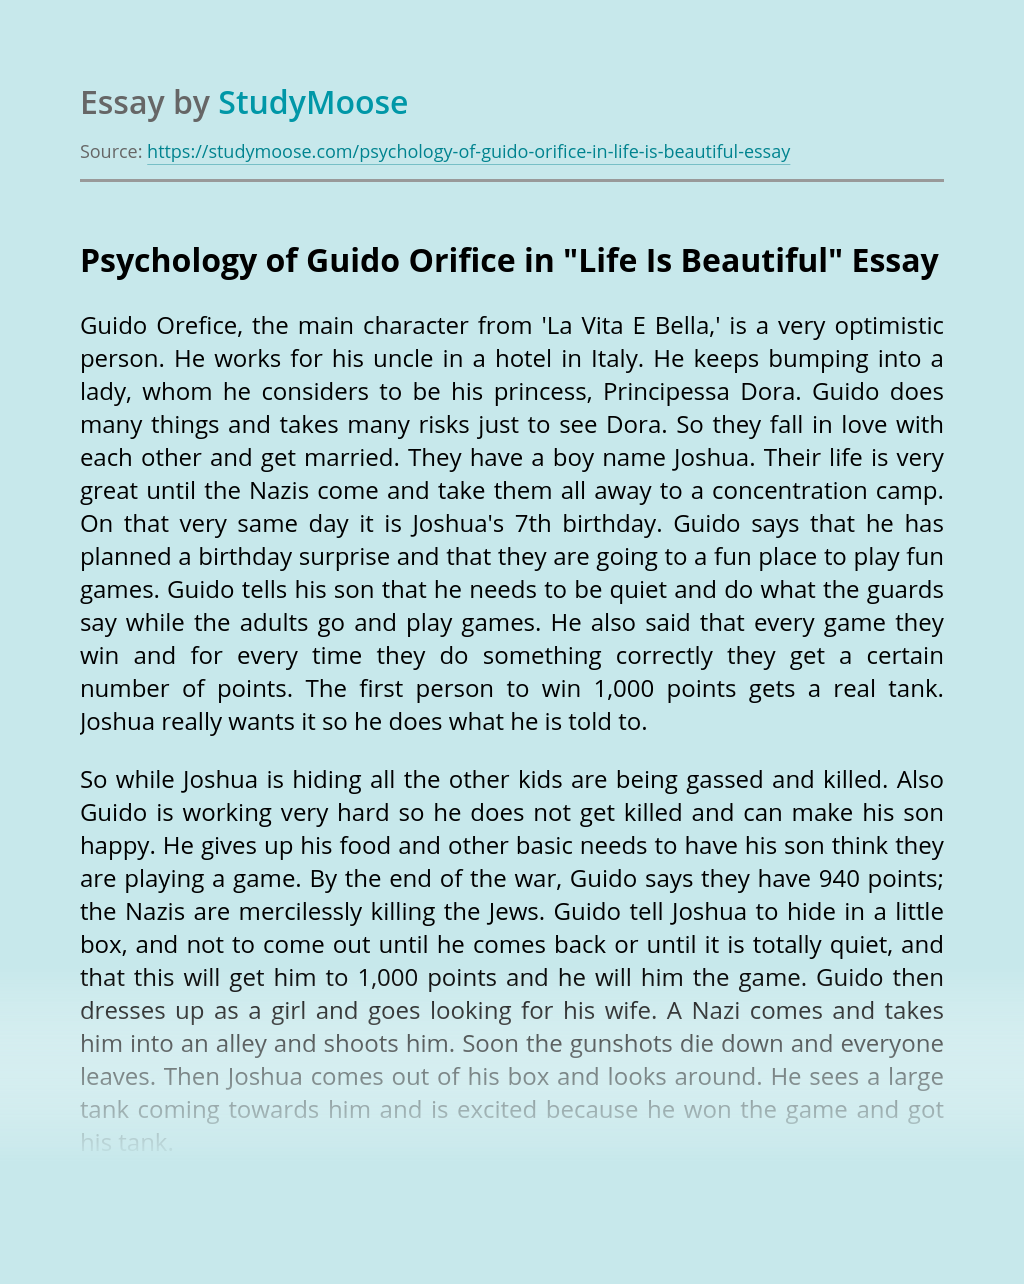 Psychology of Guido Orifice in